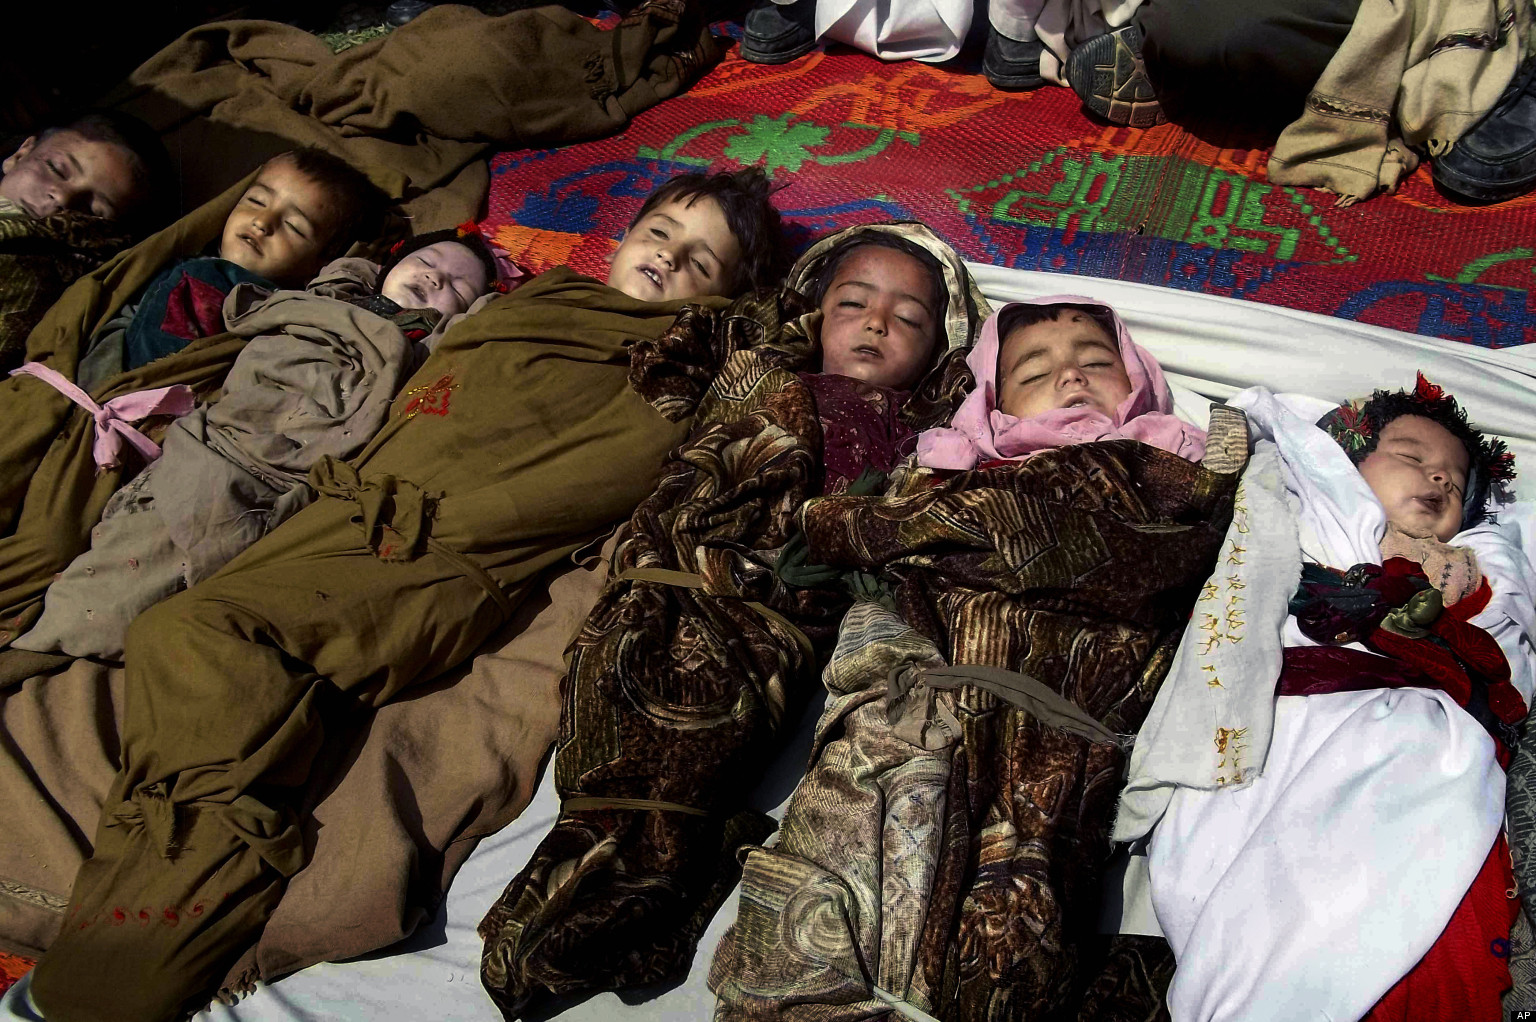 AFGHANISTAN-AIR-STRIKE-KILLS-CHILDREN-facebook.jpg